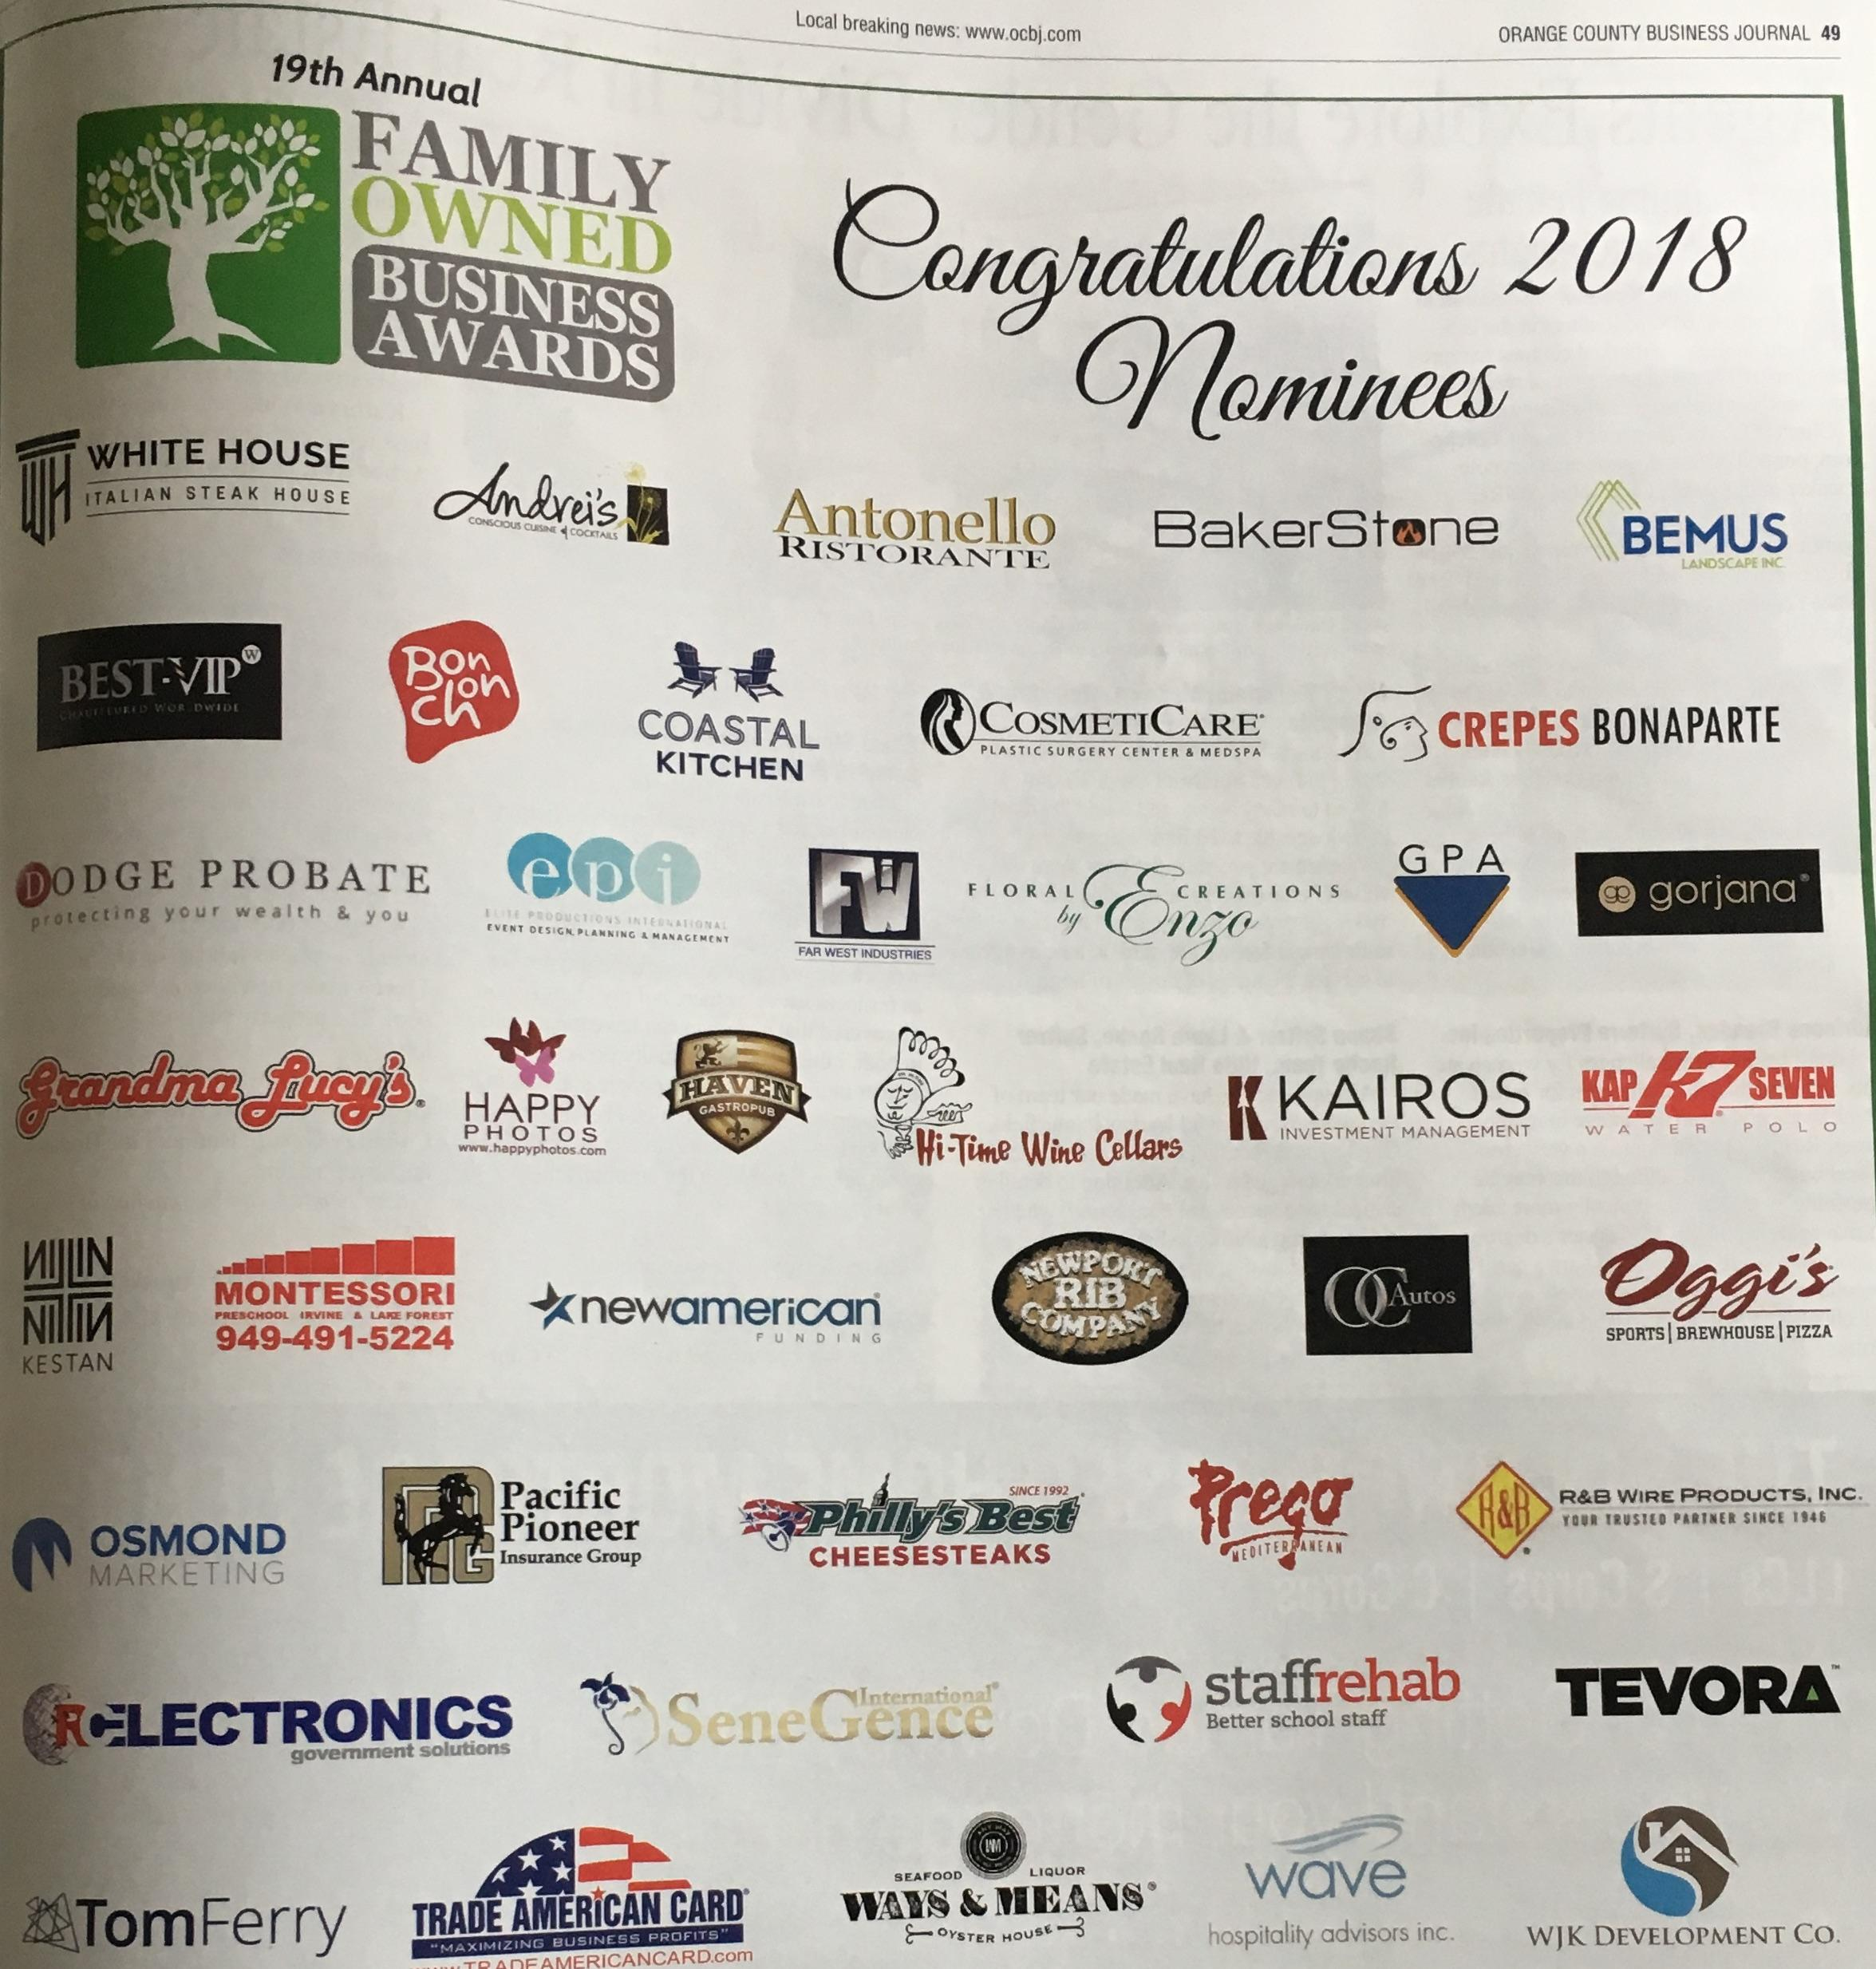 Orange County Business Journal Family Owned Business Awards